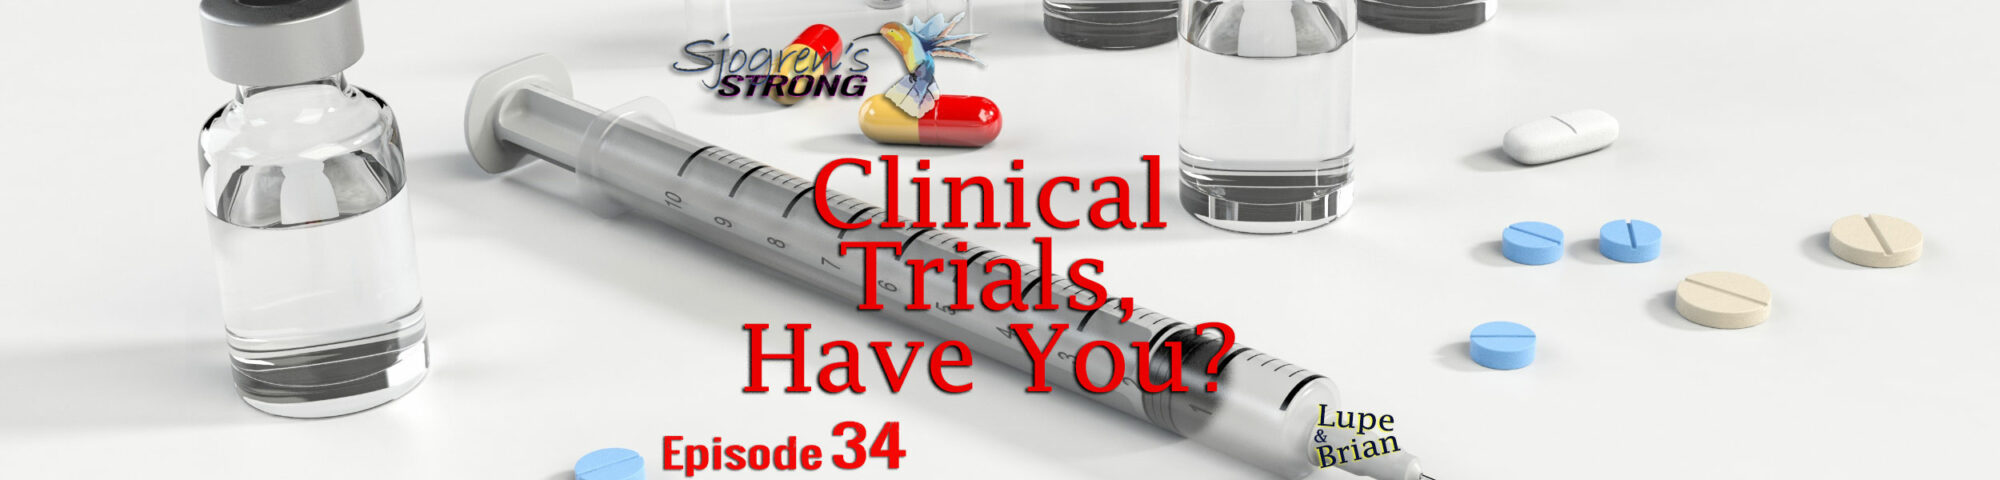 Sjogren's Strong Clinical Trials Episode 34